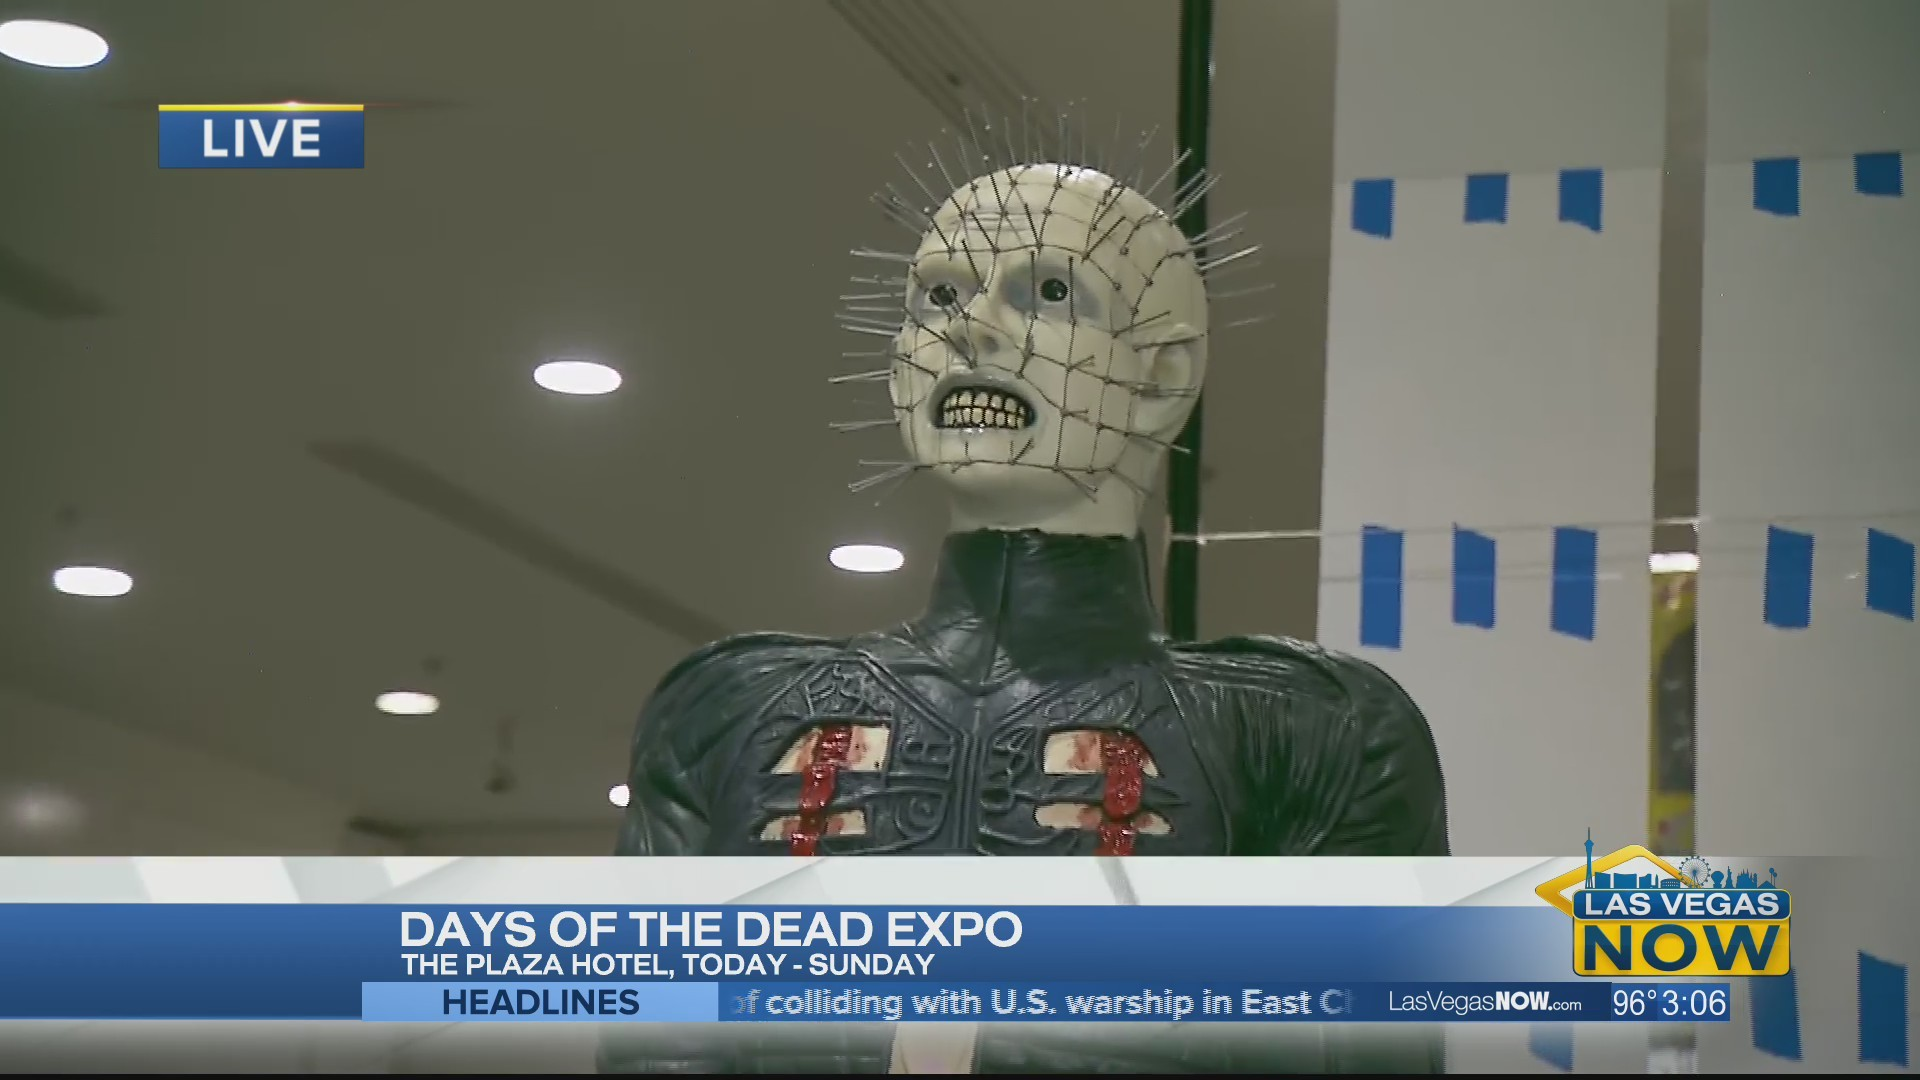 Days of the Dead takes over The Plaza Hotel